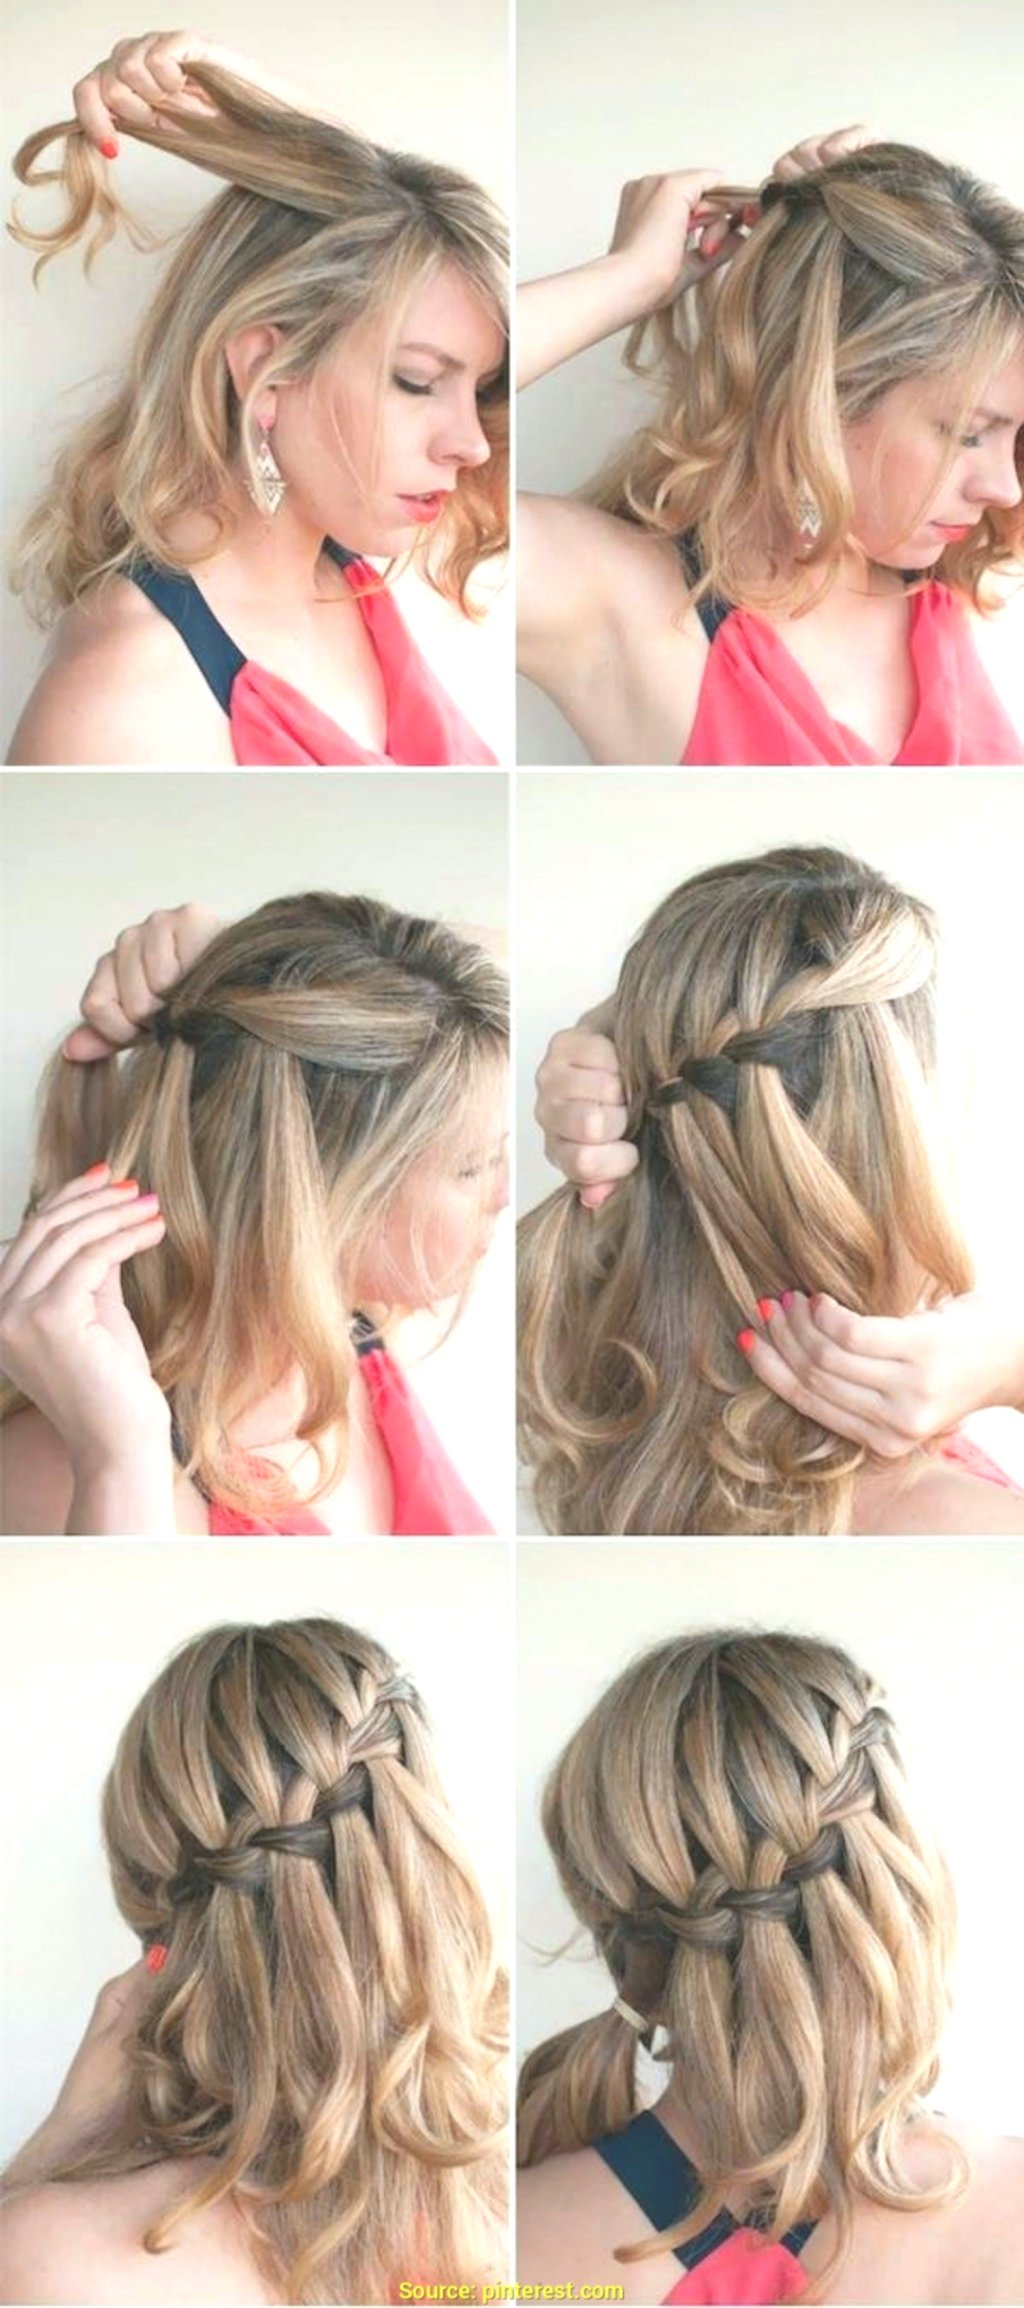 stylish half-open braided hairstyles photo image-fascinating Semi-open braided hairstyles concepts